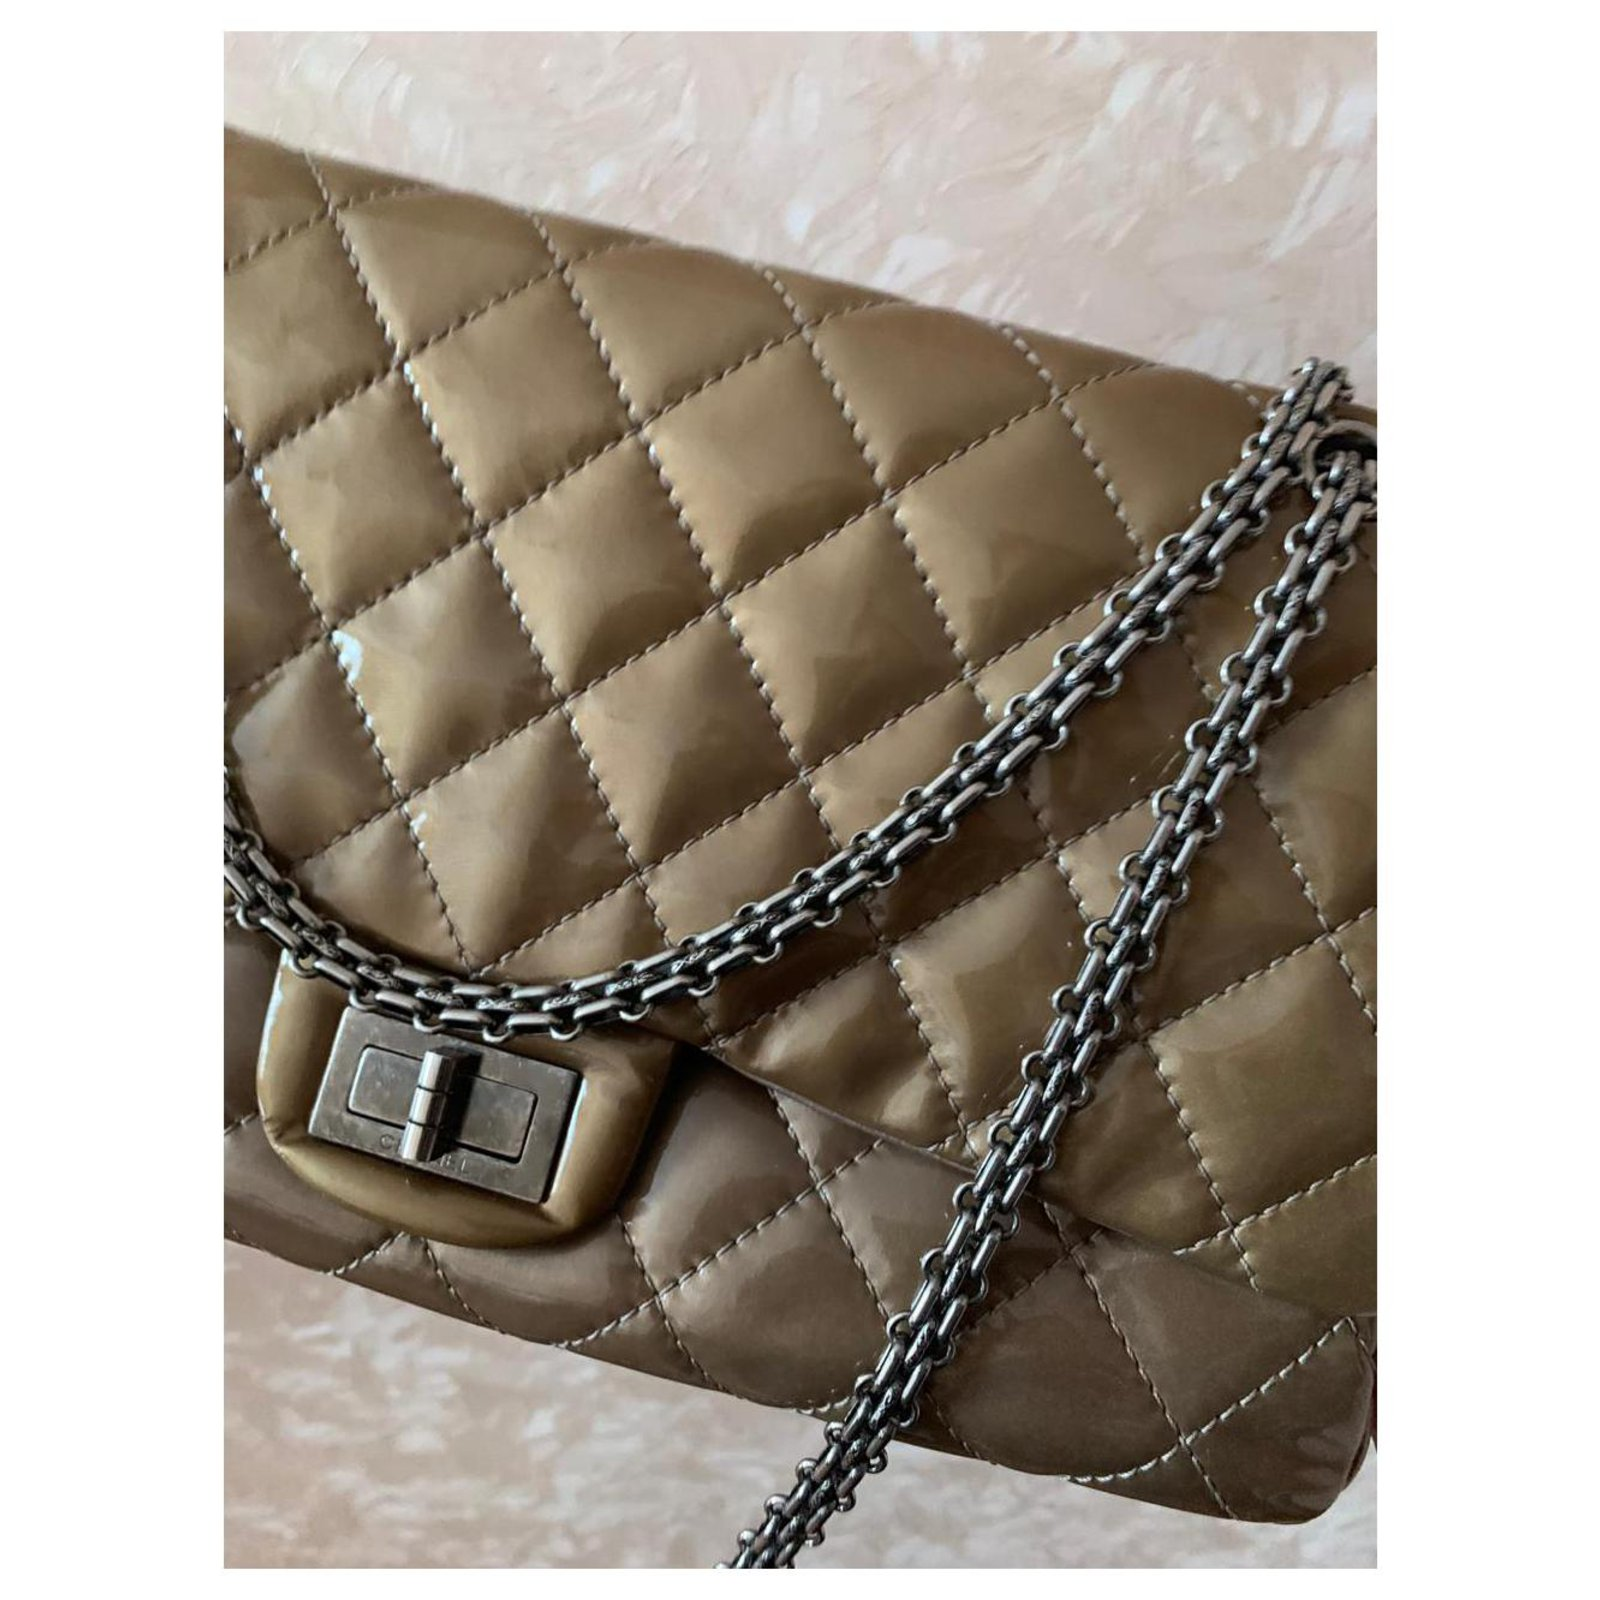 782fbde975ec46 Facebook · Pin This. Chanel Reissue 2.55 Handbags Patent leather Beige ...